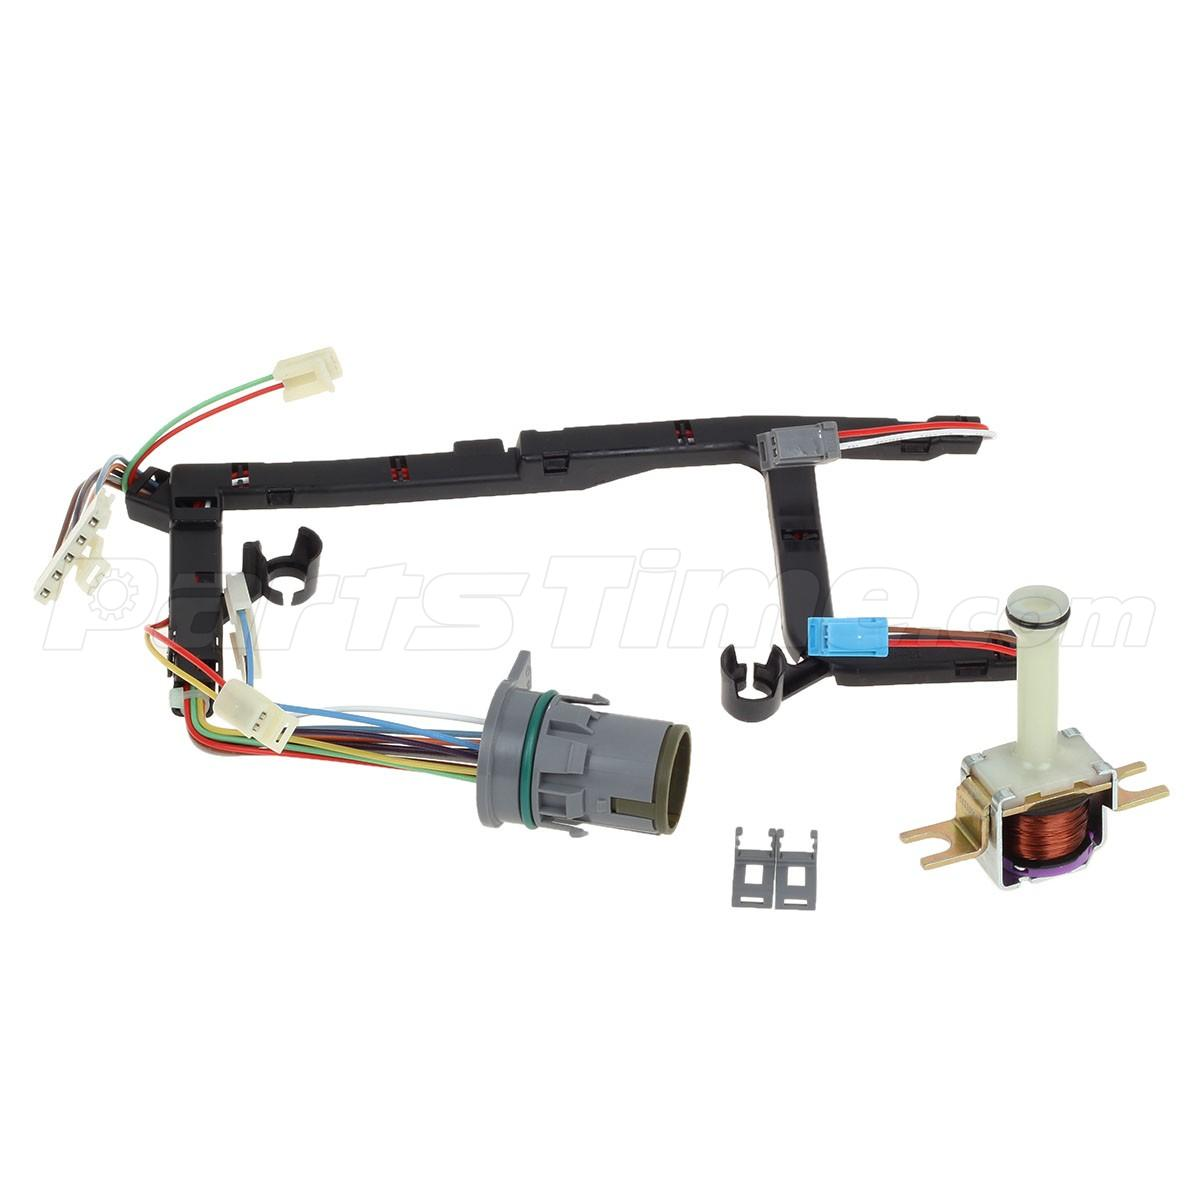 142072 8?p=ZGVhbGNsaWNr&s=t&rn=9208694 transmission 4l60e tcc look up solenoid with internal wire harness 4l60e wiring harness at panicattacktreatment.co